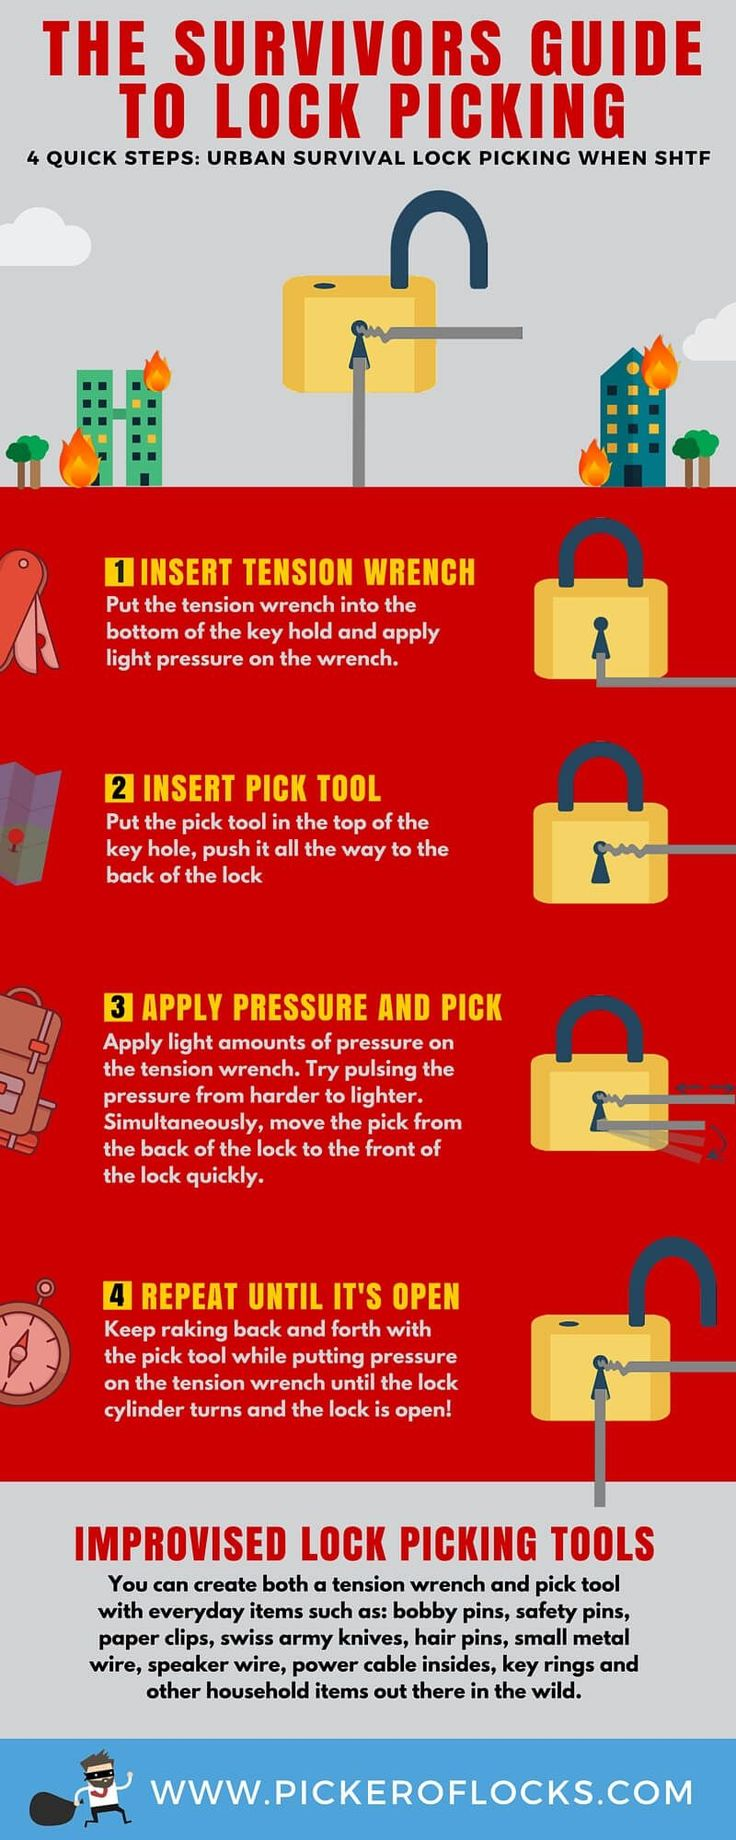 Learn how to pick a lock quickly. Lock picking is a fun hobby and important urban survivalist skill when SHTF comes to find shelter, food, and more